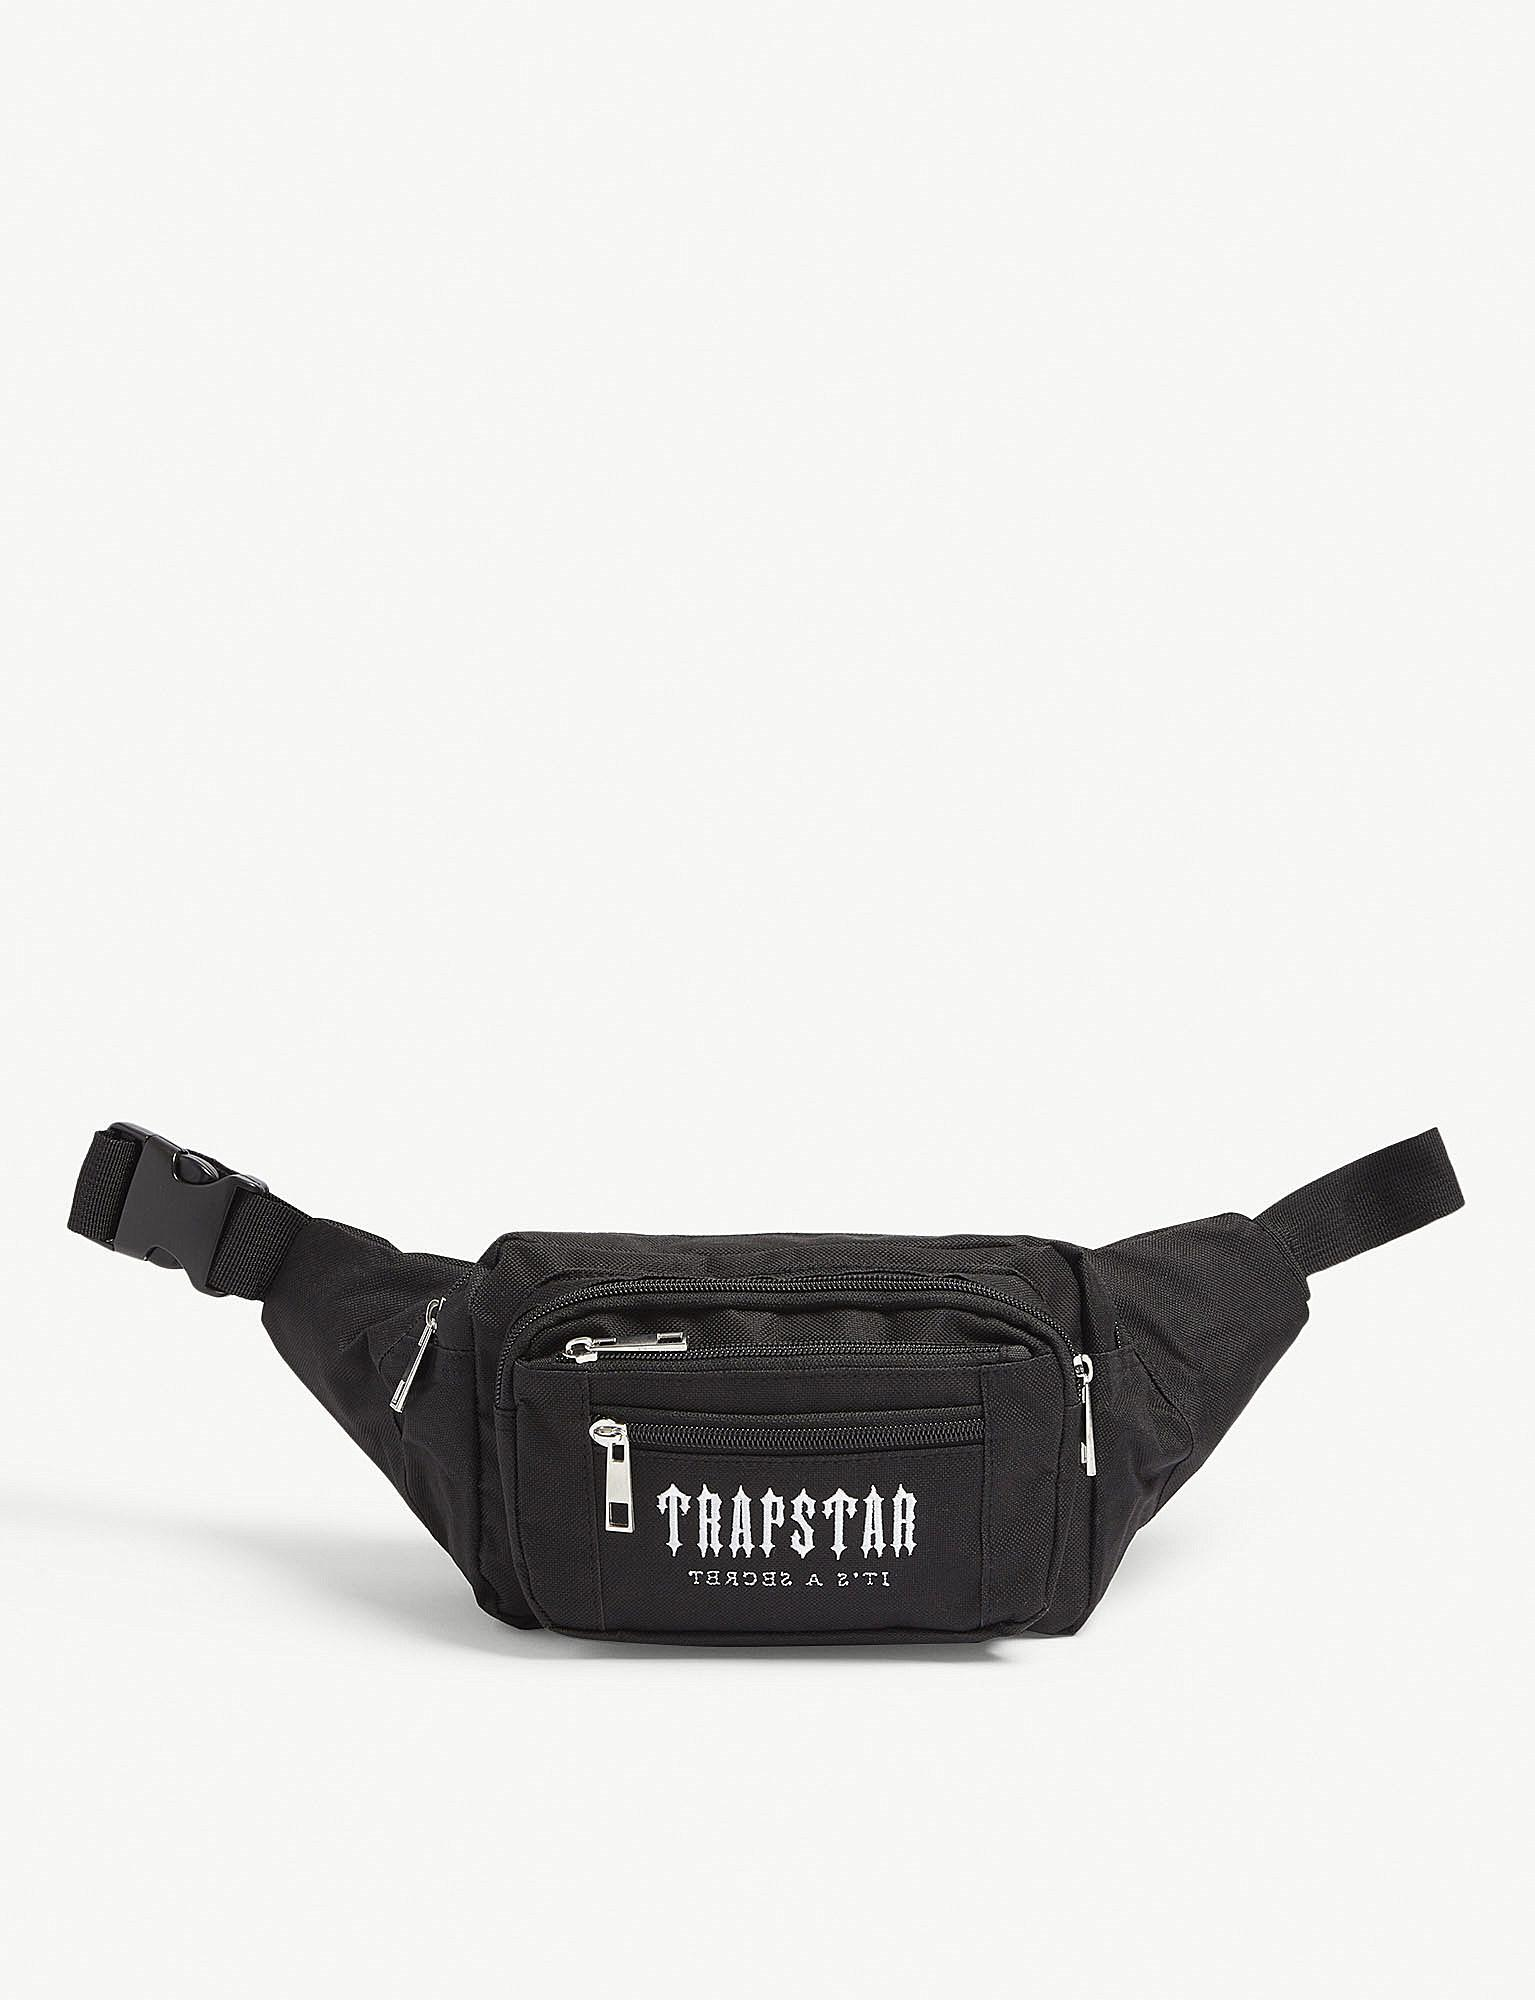 44e5a79a9 Trapstar Embroidered Belt Bag in Black for Men - Lyst